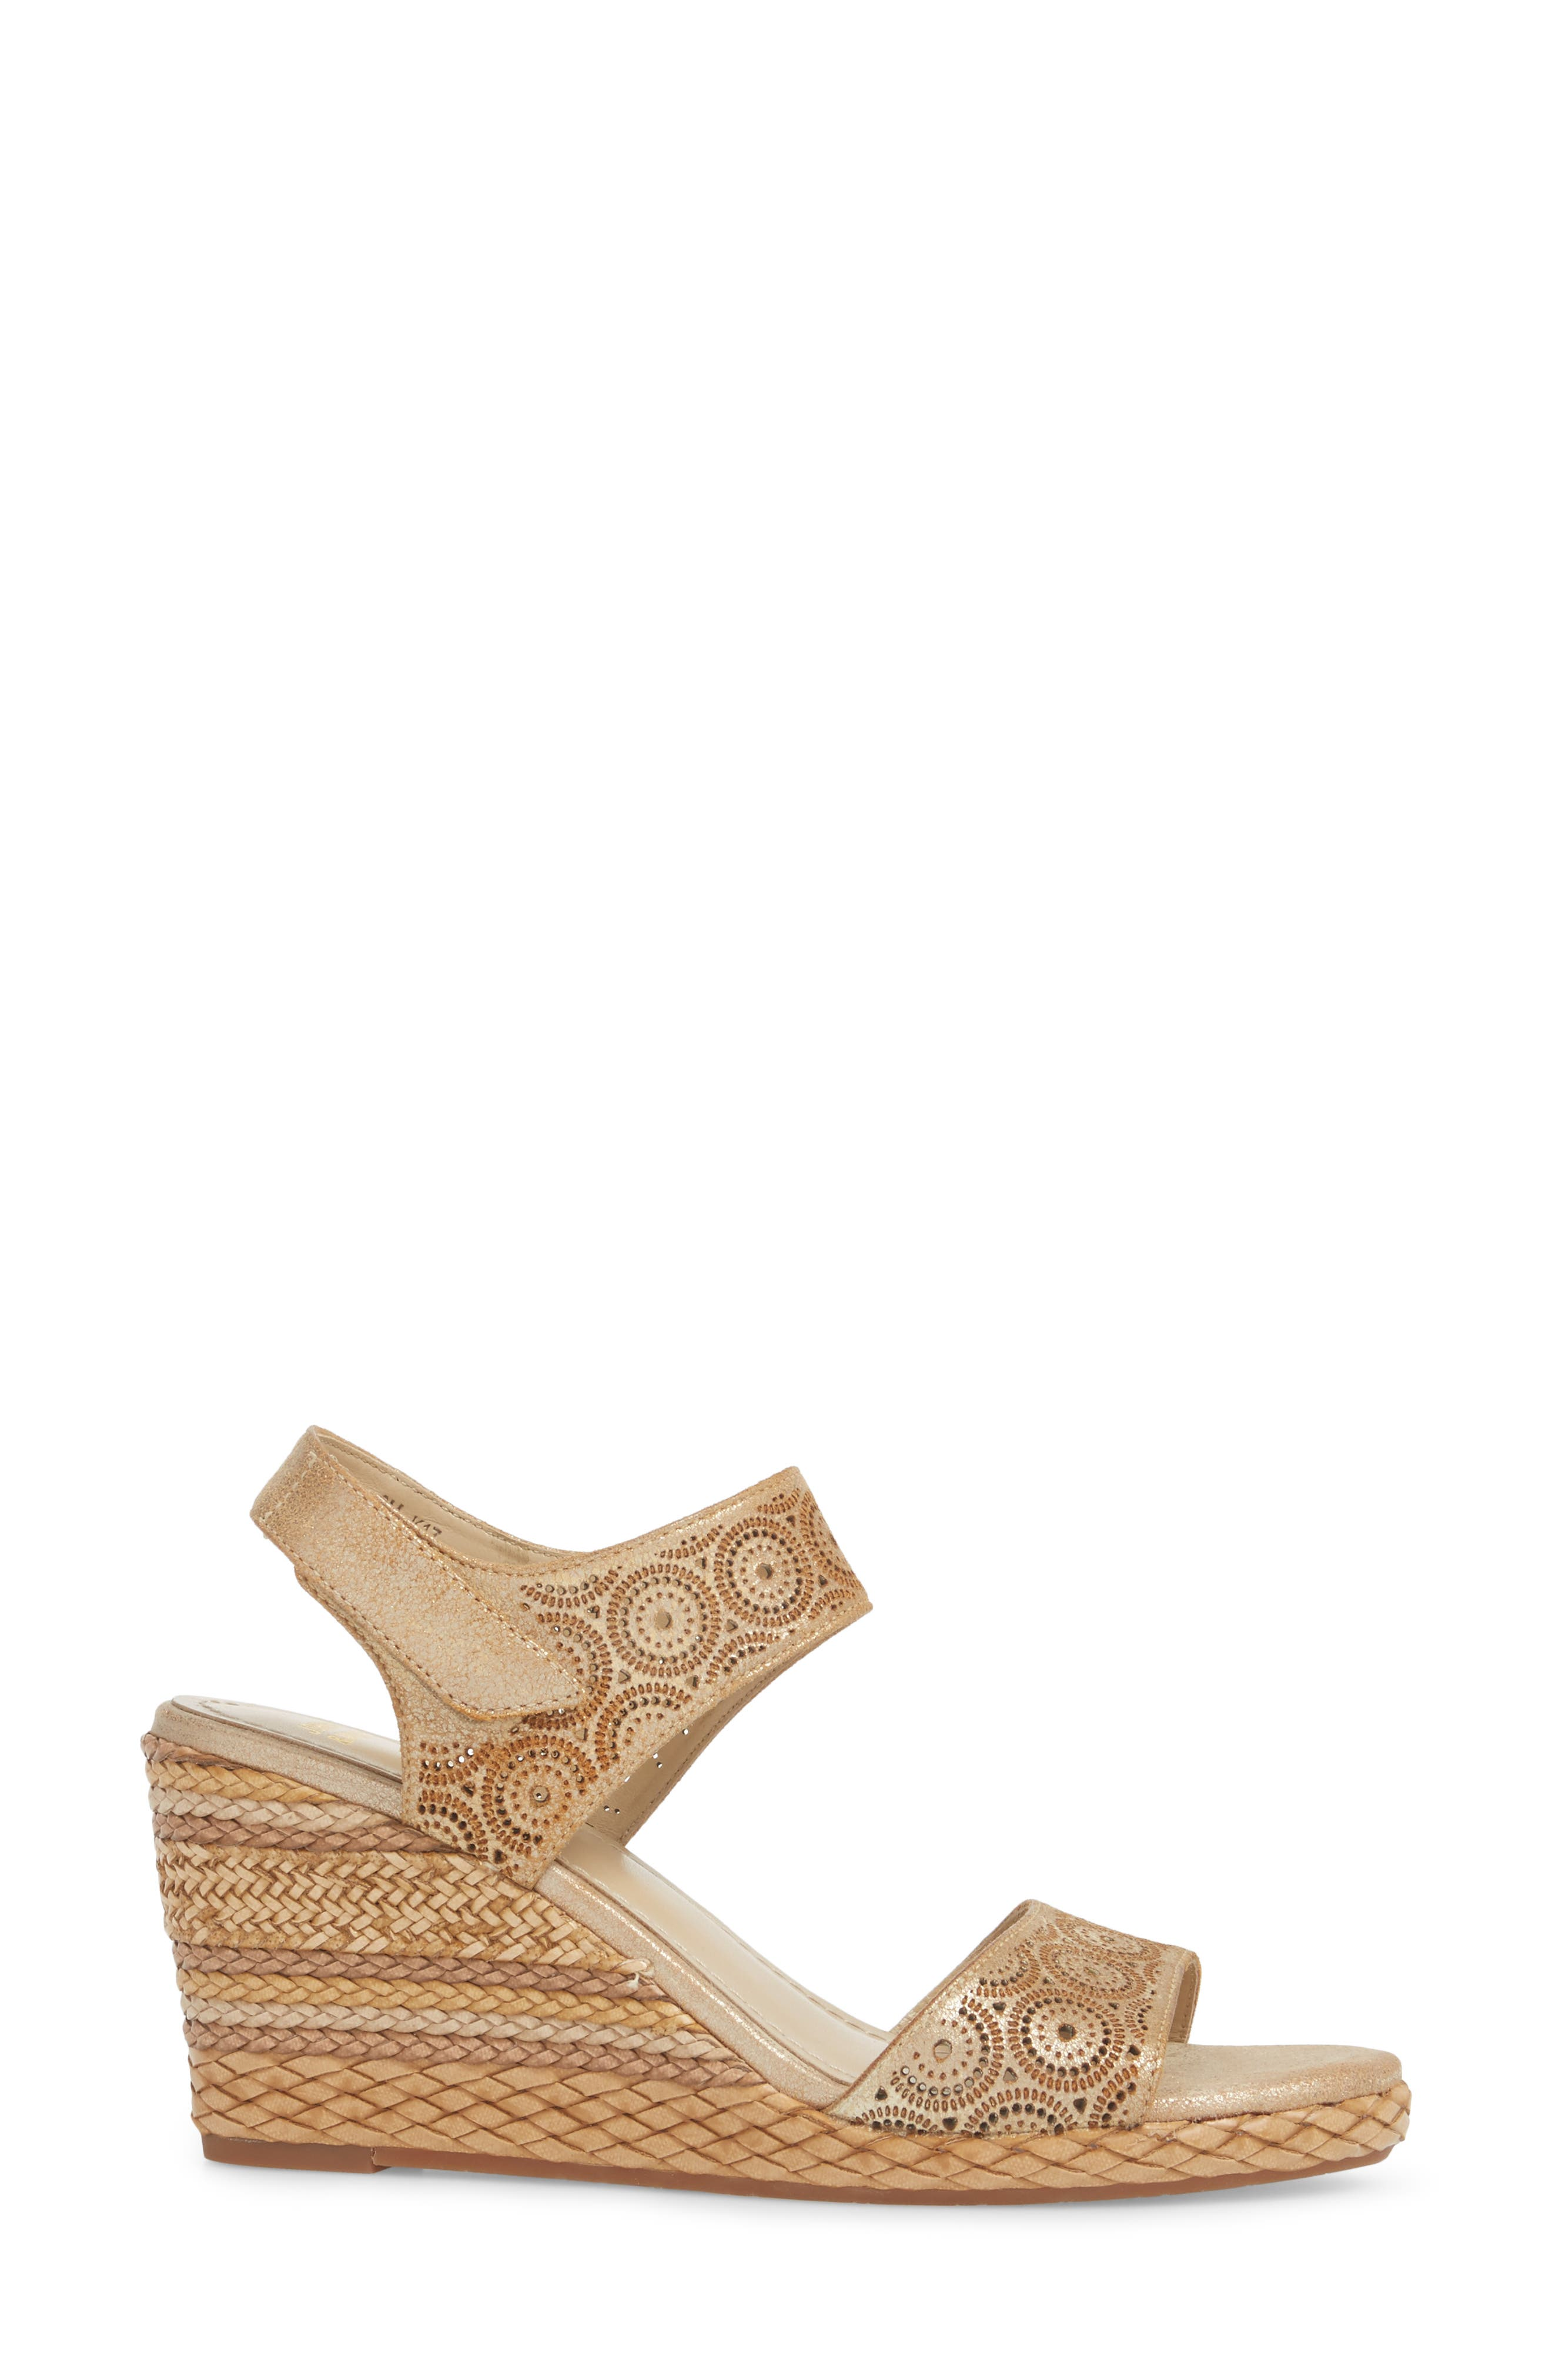 Georgiana Wedge Sandal,                             Alternate thumbnail 6, color,